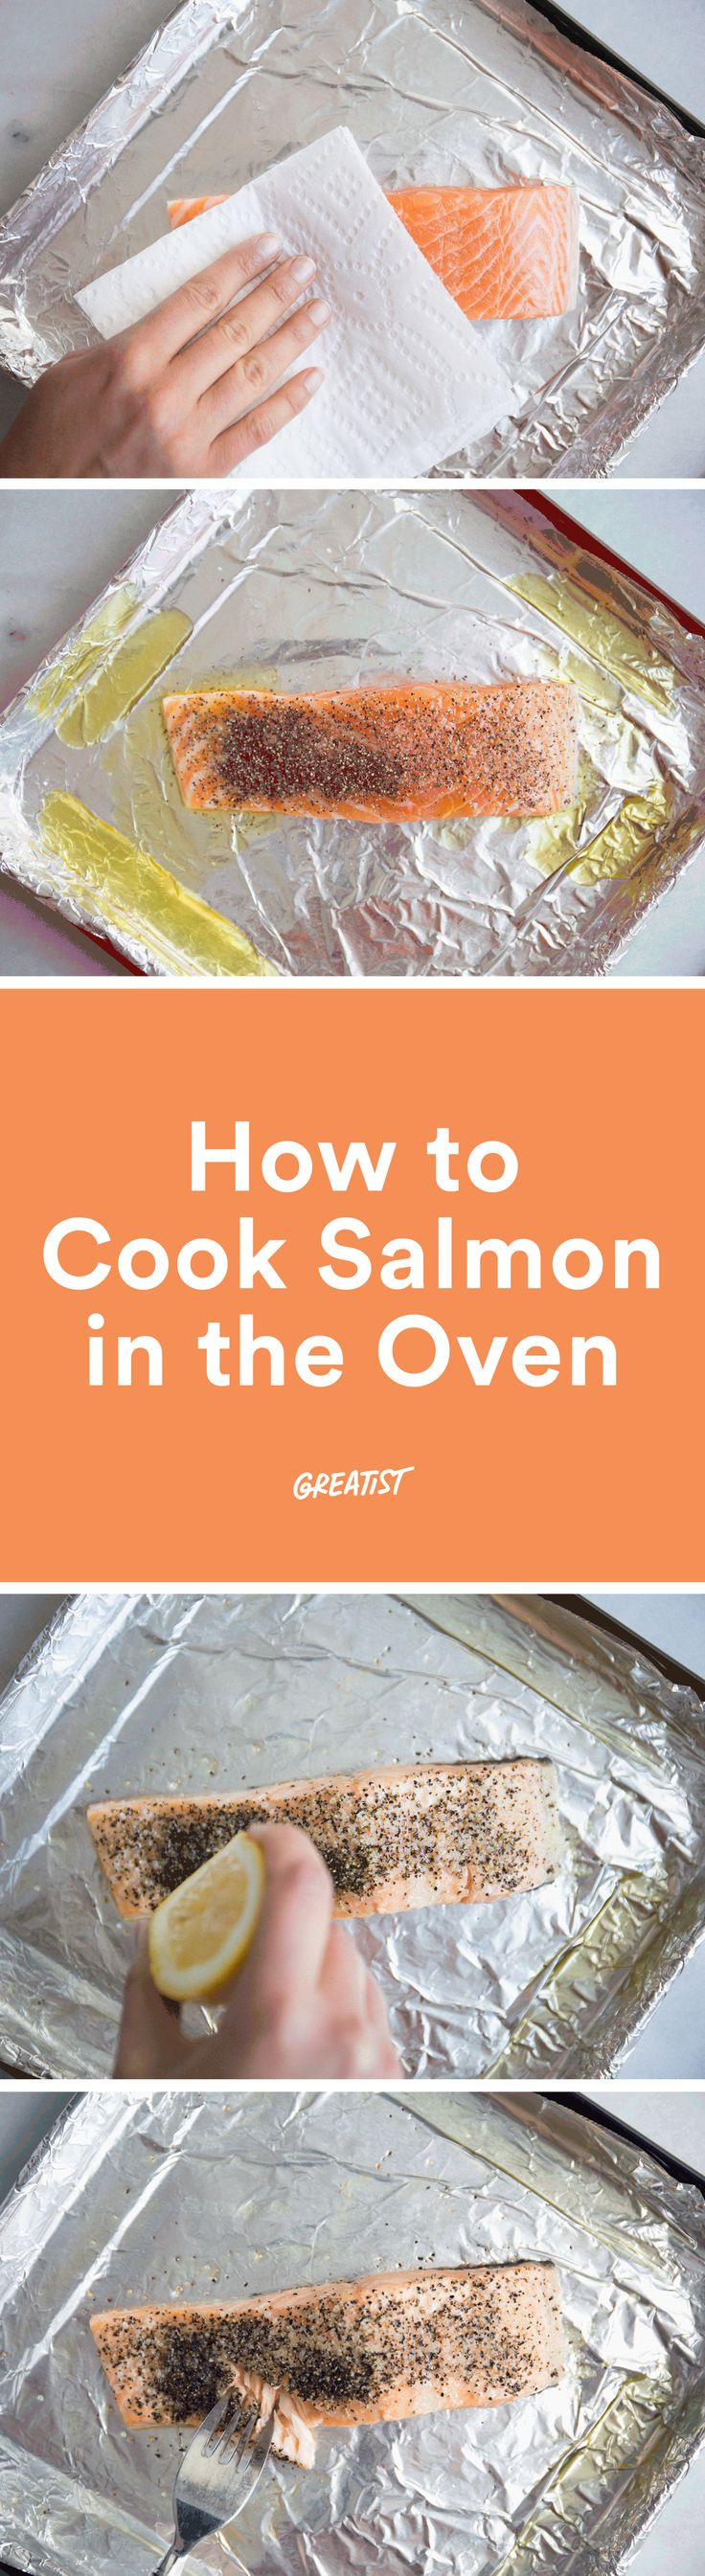 2 Foolproof Ways to Cook Salmon